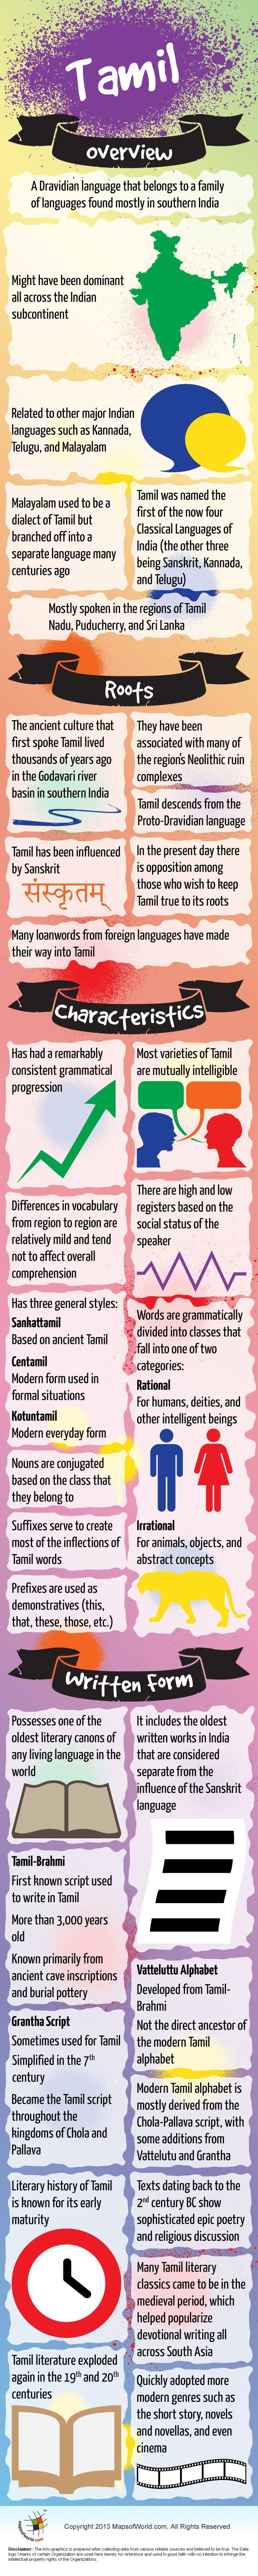 Educational infographic : Tamil Language Facts & Infographic | Languages of the World